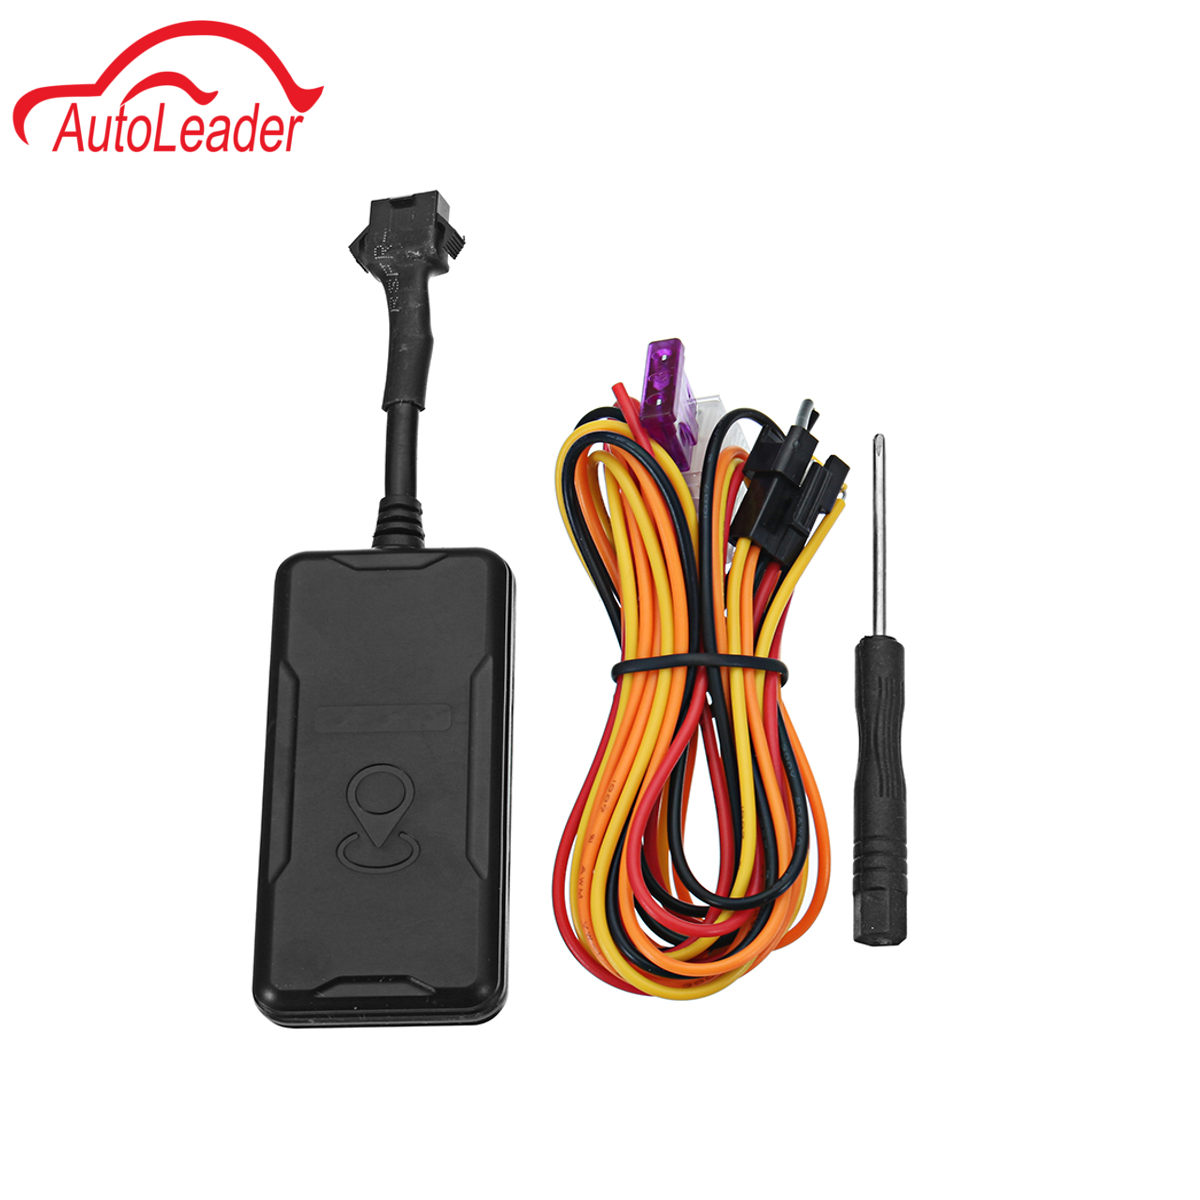 1pcs Car Gps Tracker Vehicle Locator Waterproof And Dustproof Electronicsdiycomcircuit The Rf Thief Tracking Anti In Trackers From Automobiles Motorcycles On